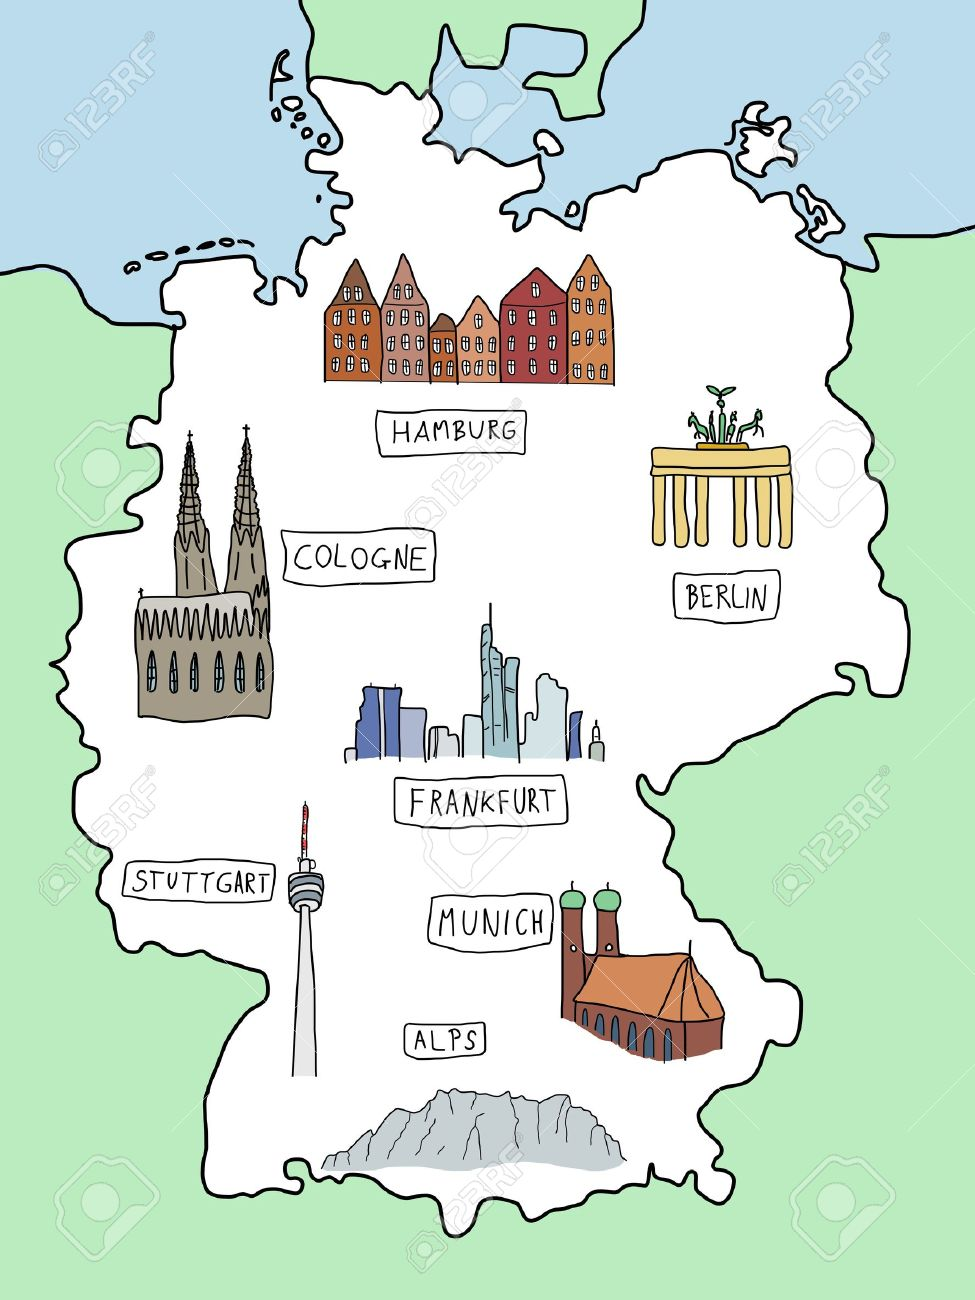 Munich Cliparts Stock Vector And Royalty Free Munich - Munchen germany map